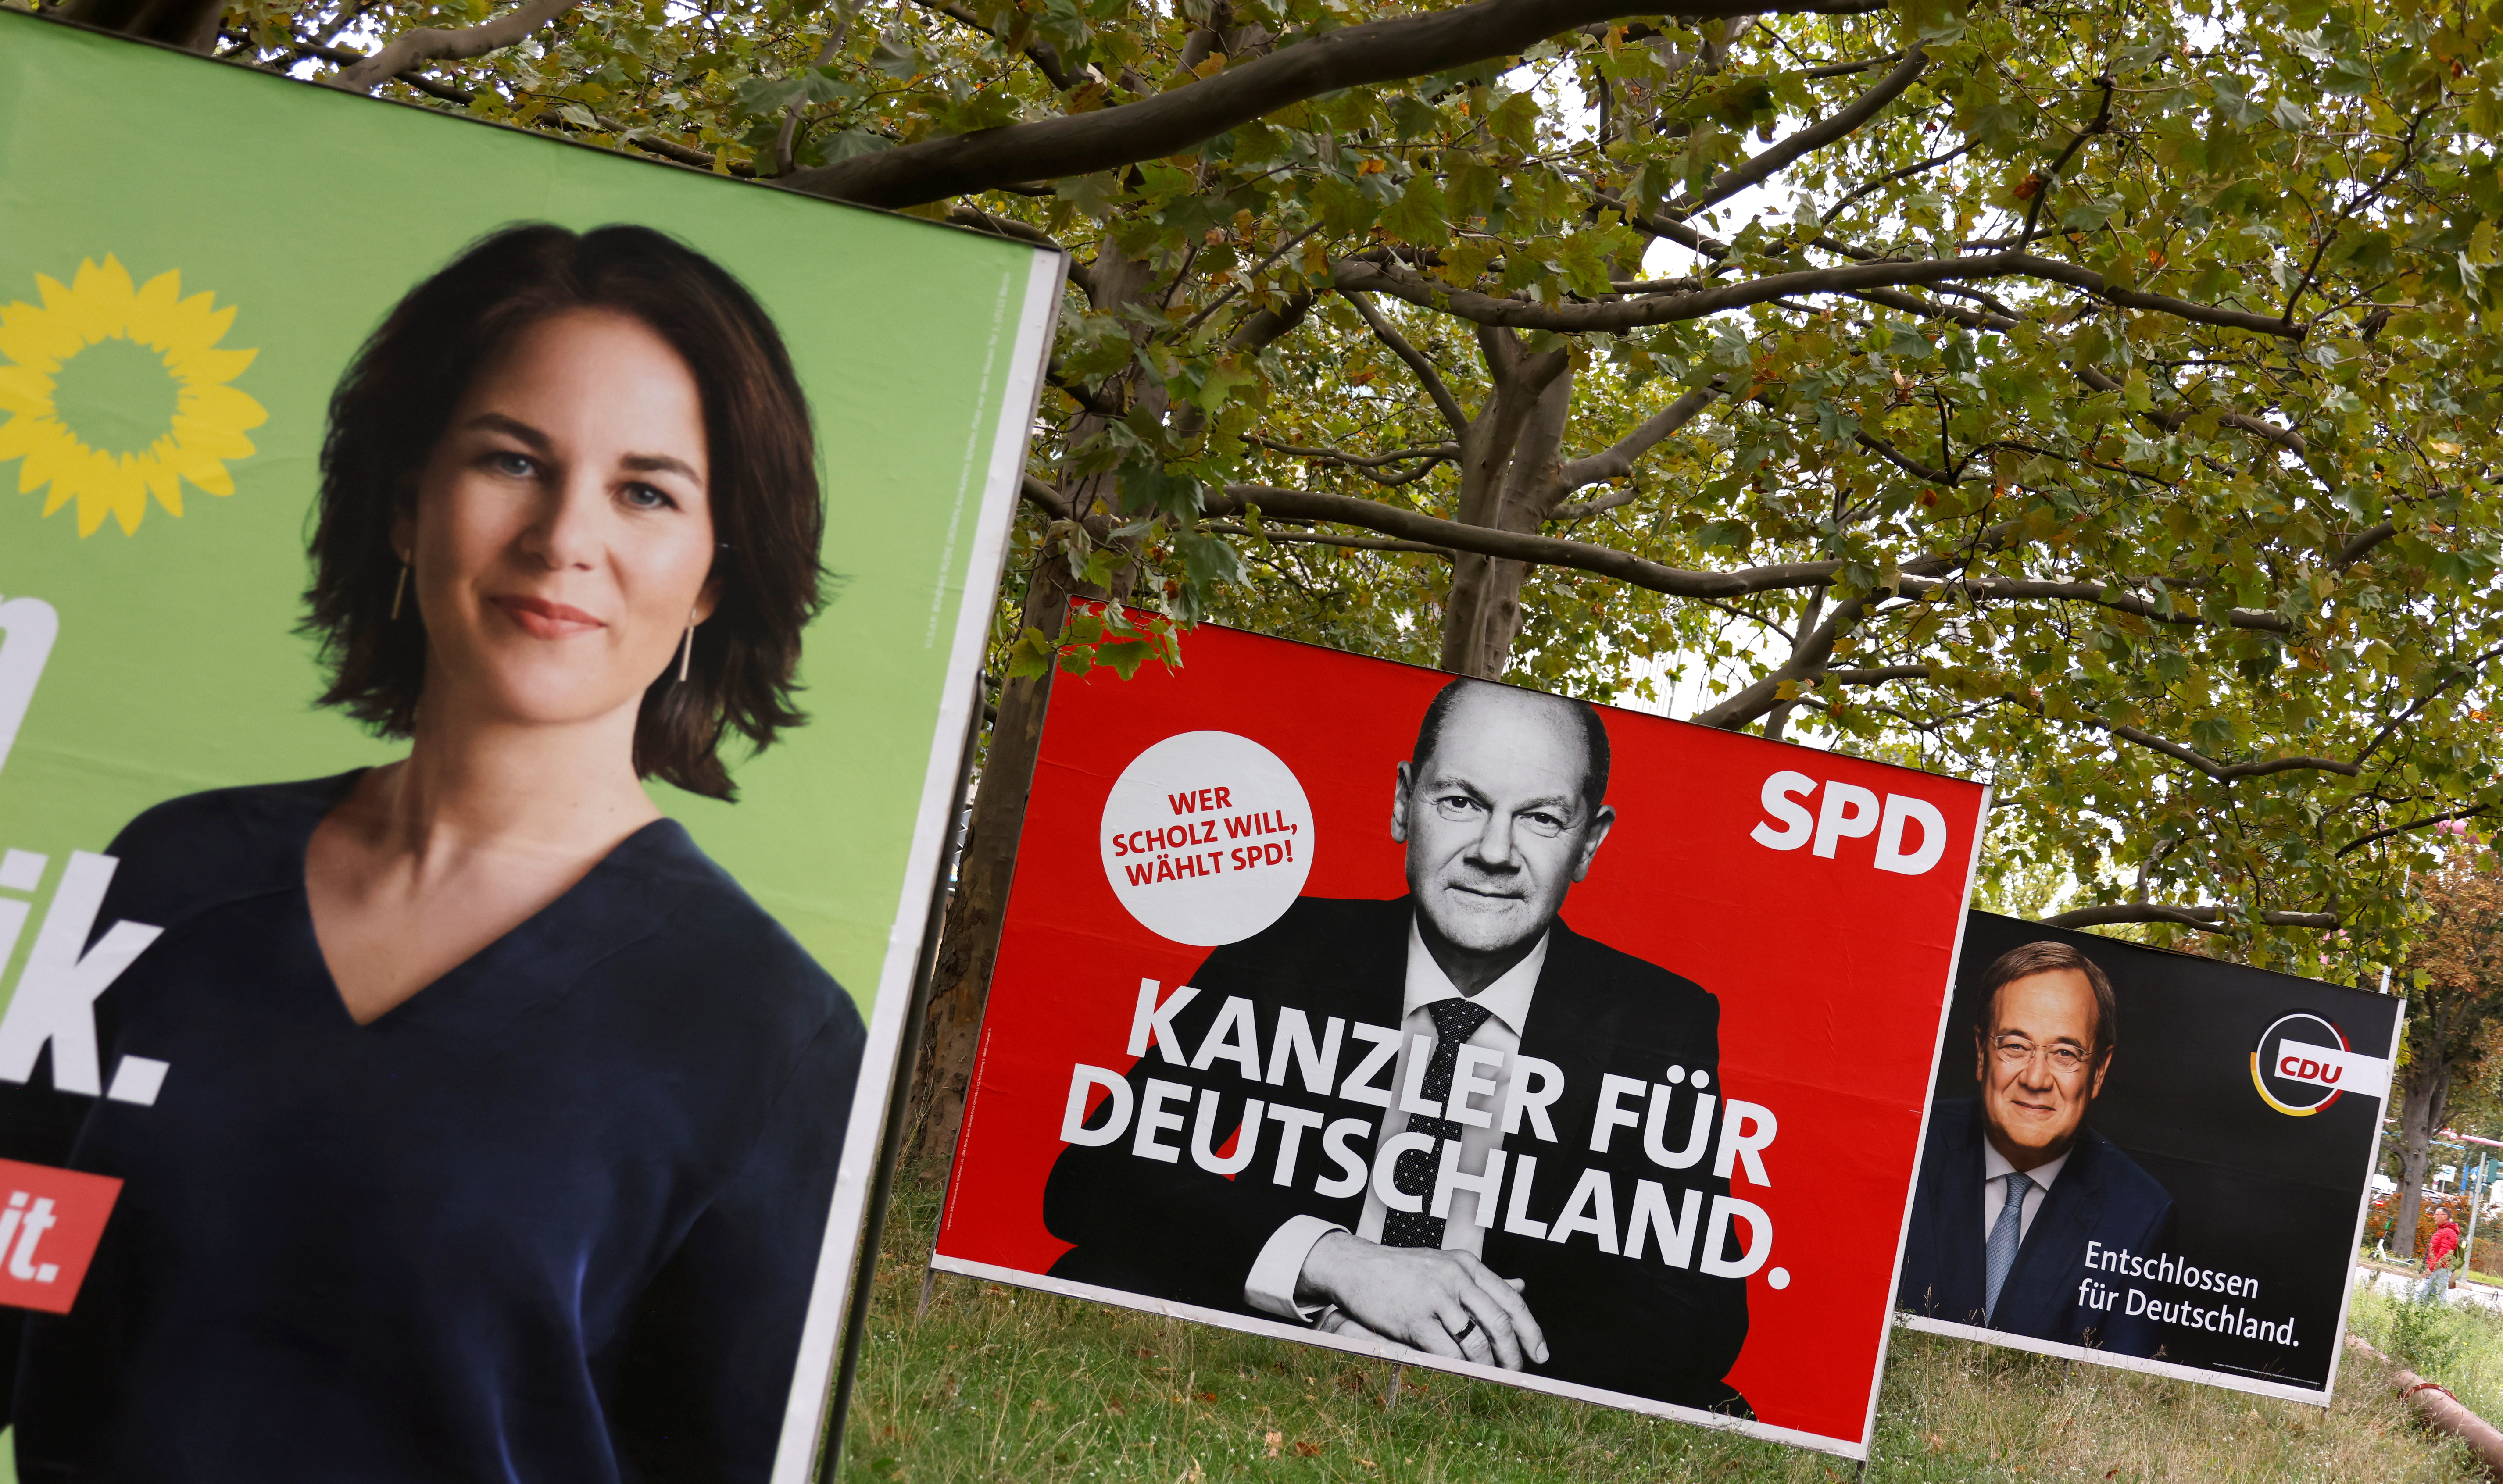 Election posters of Germany's top candidates for chancellor Annalena Baerbock, co-leader of Germany's Green party, Olaf Scholz, German Minister of Finance of the Social Democratic Party (SPD) and Armin Laschet, North Rhine-Westphalia's State Premier and Christian Democratic Union (CDU) leader, are pictured, in Berlin, Germany, September 16, 2021.   REUTERS/Fabrizio Bensch